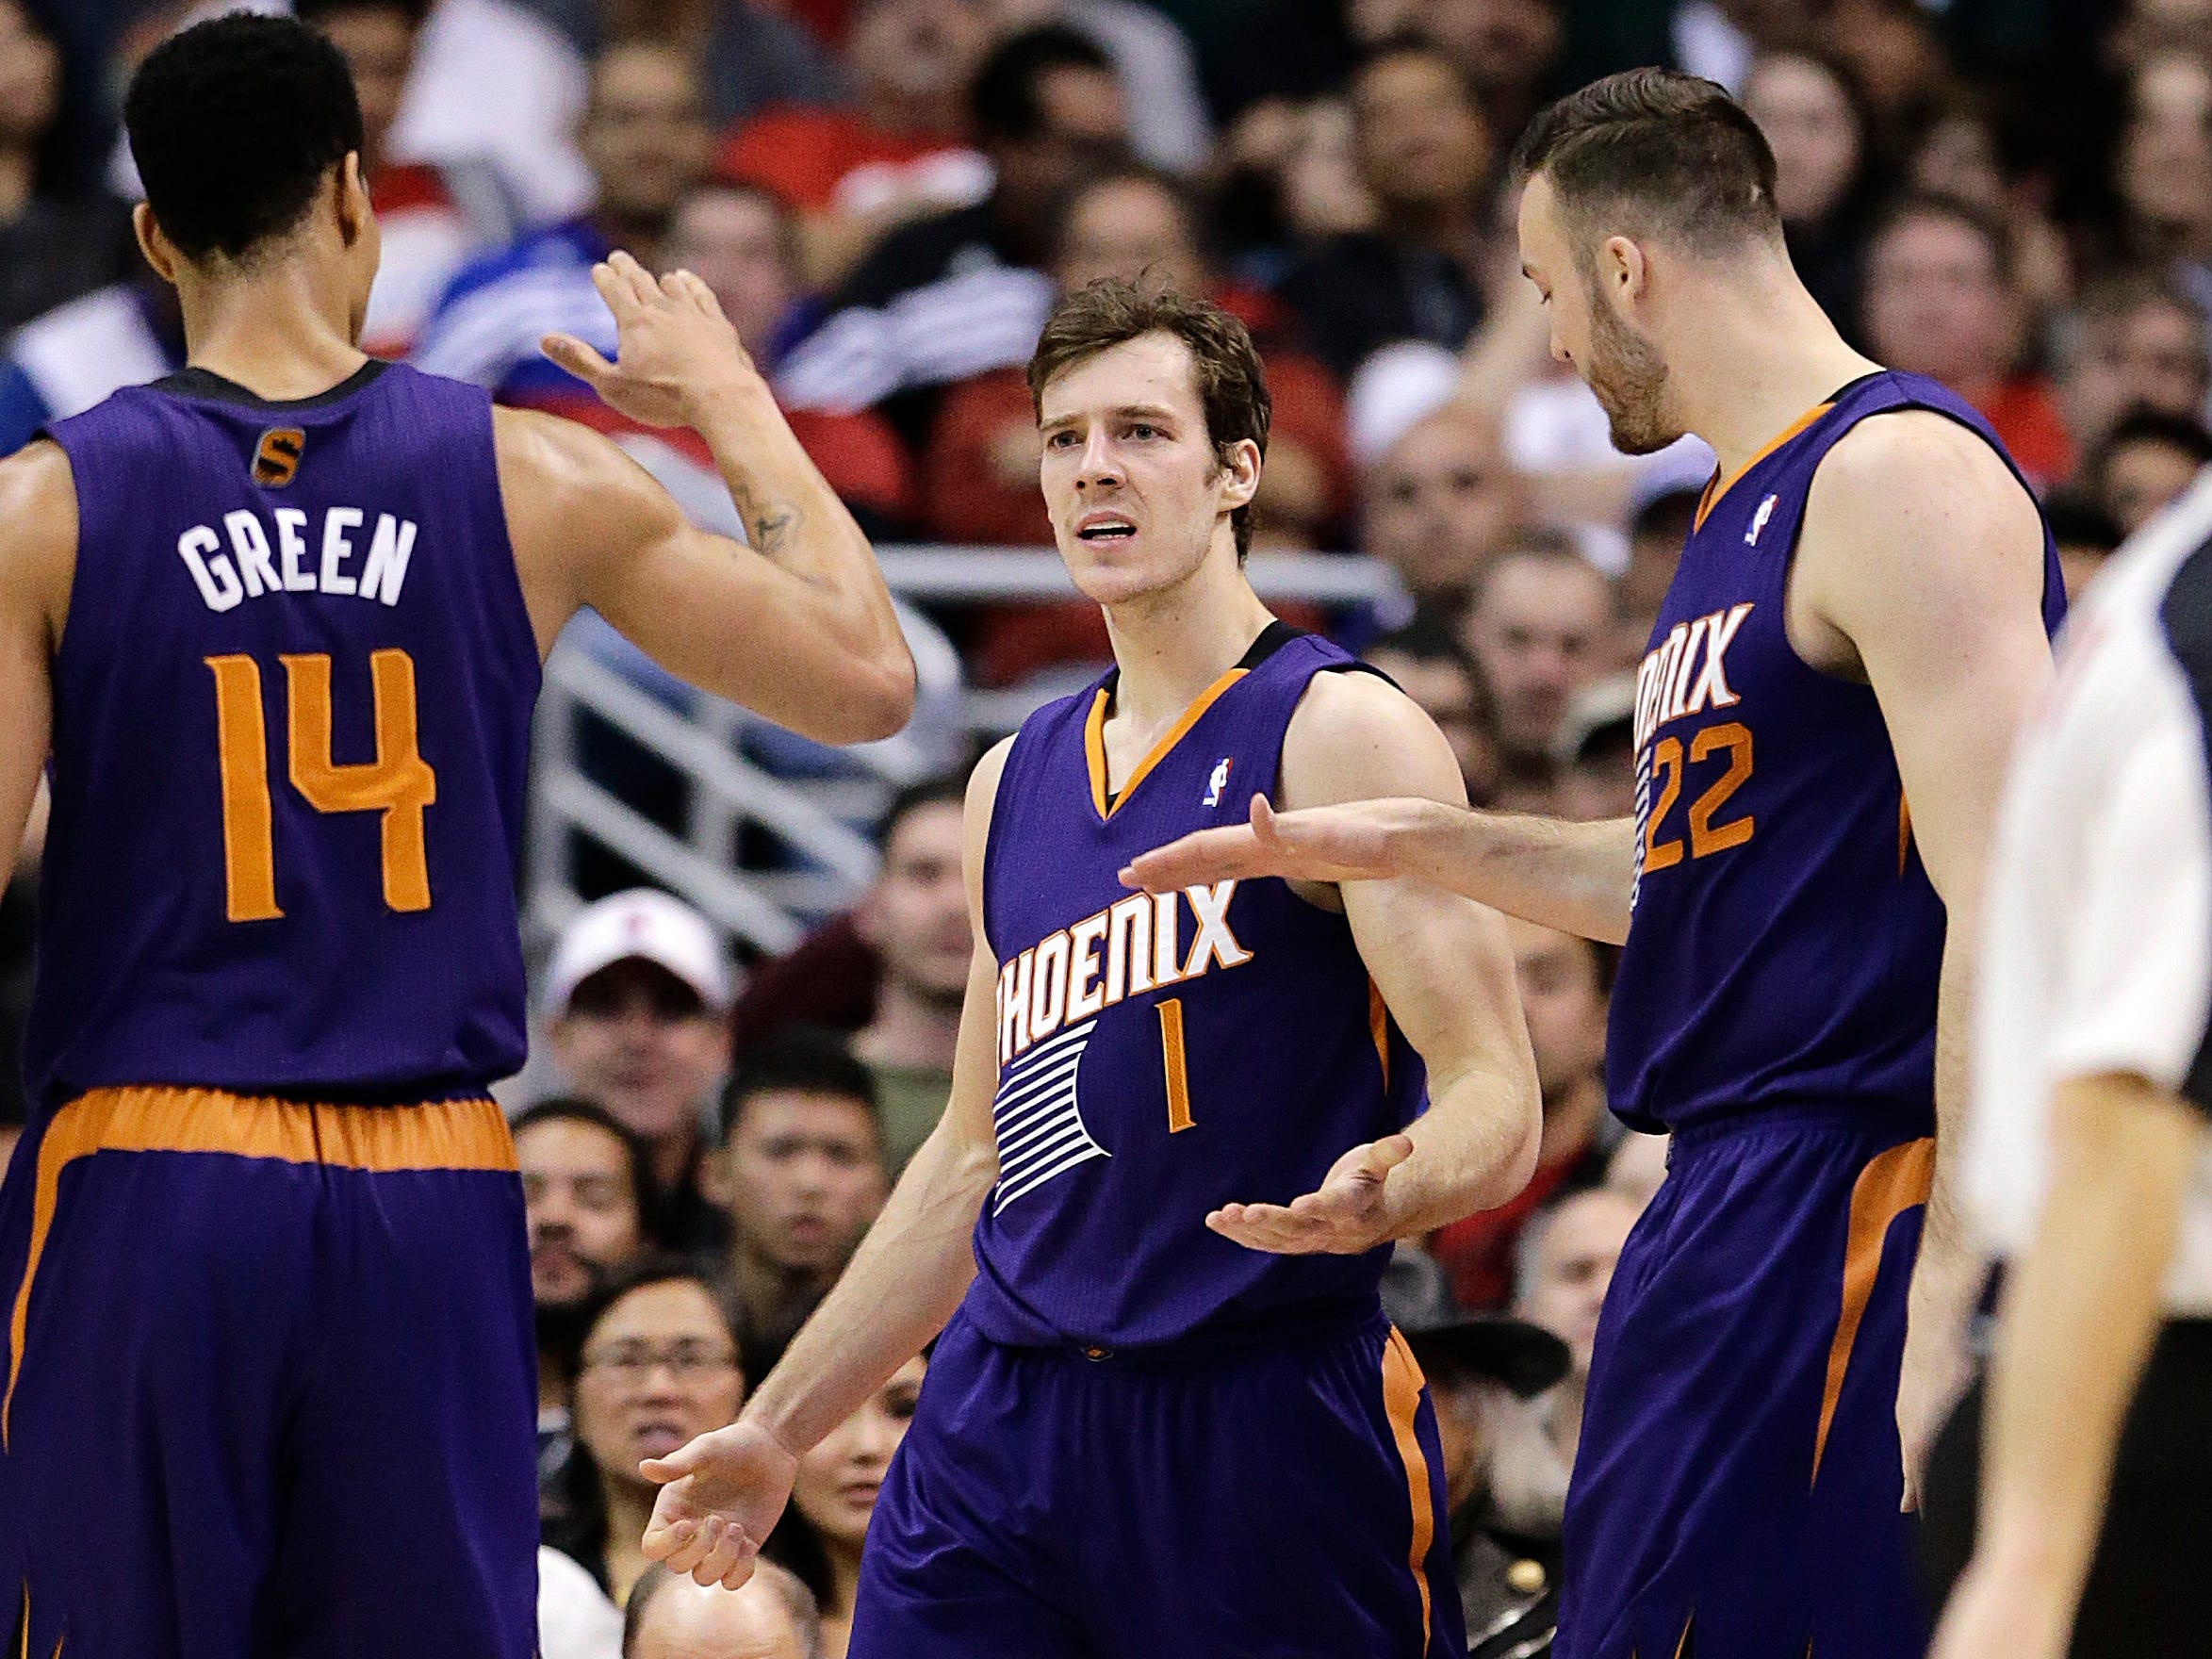 2013-14 | Suns MVP: Goran Dragic. Dragic was an All-NBA third teamer. He led the Suns in scoring and assists, and briefly made everyone wonder whether he could be the successor to Steve Nash.